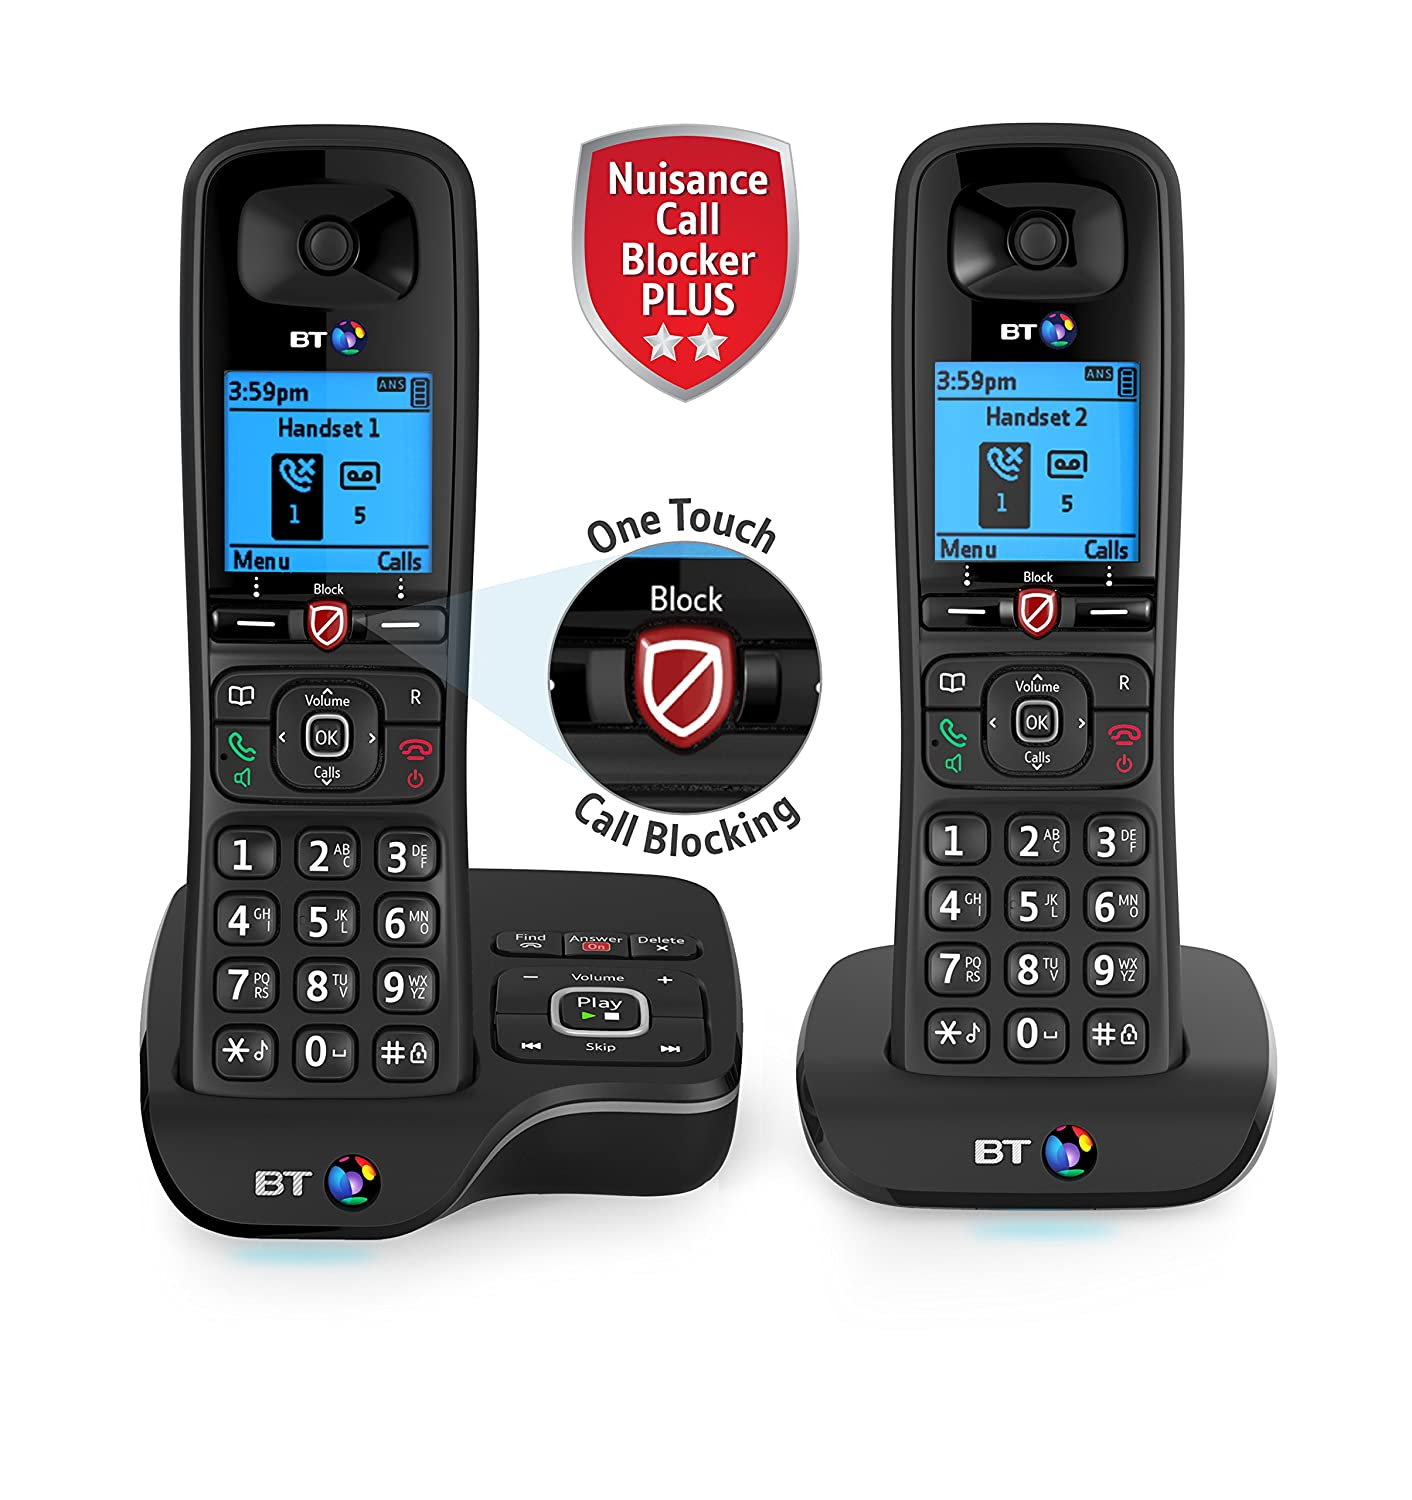 Bt 6600 Nuisance Call Blocker Cordless Home Phone With: Amazon:  Electronics